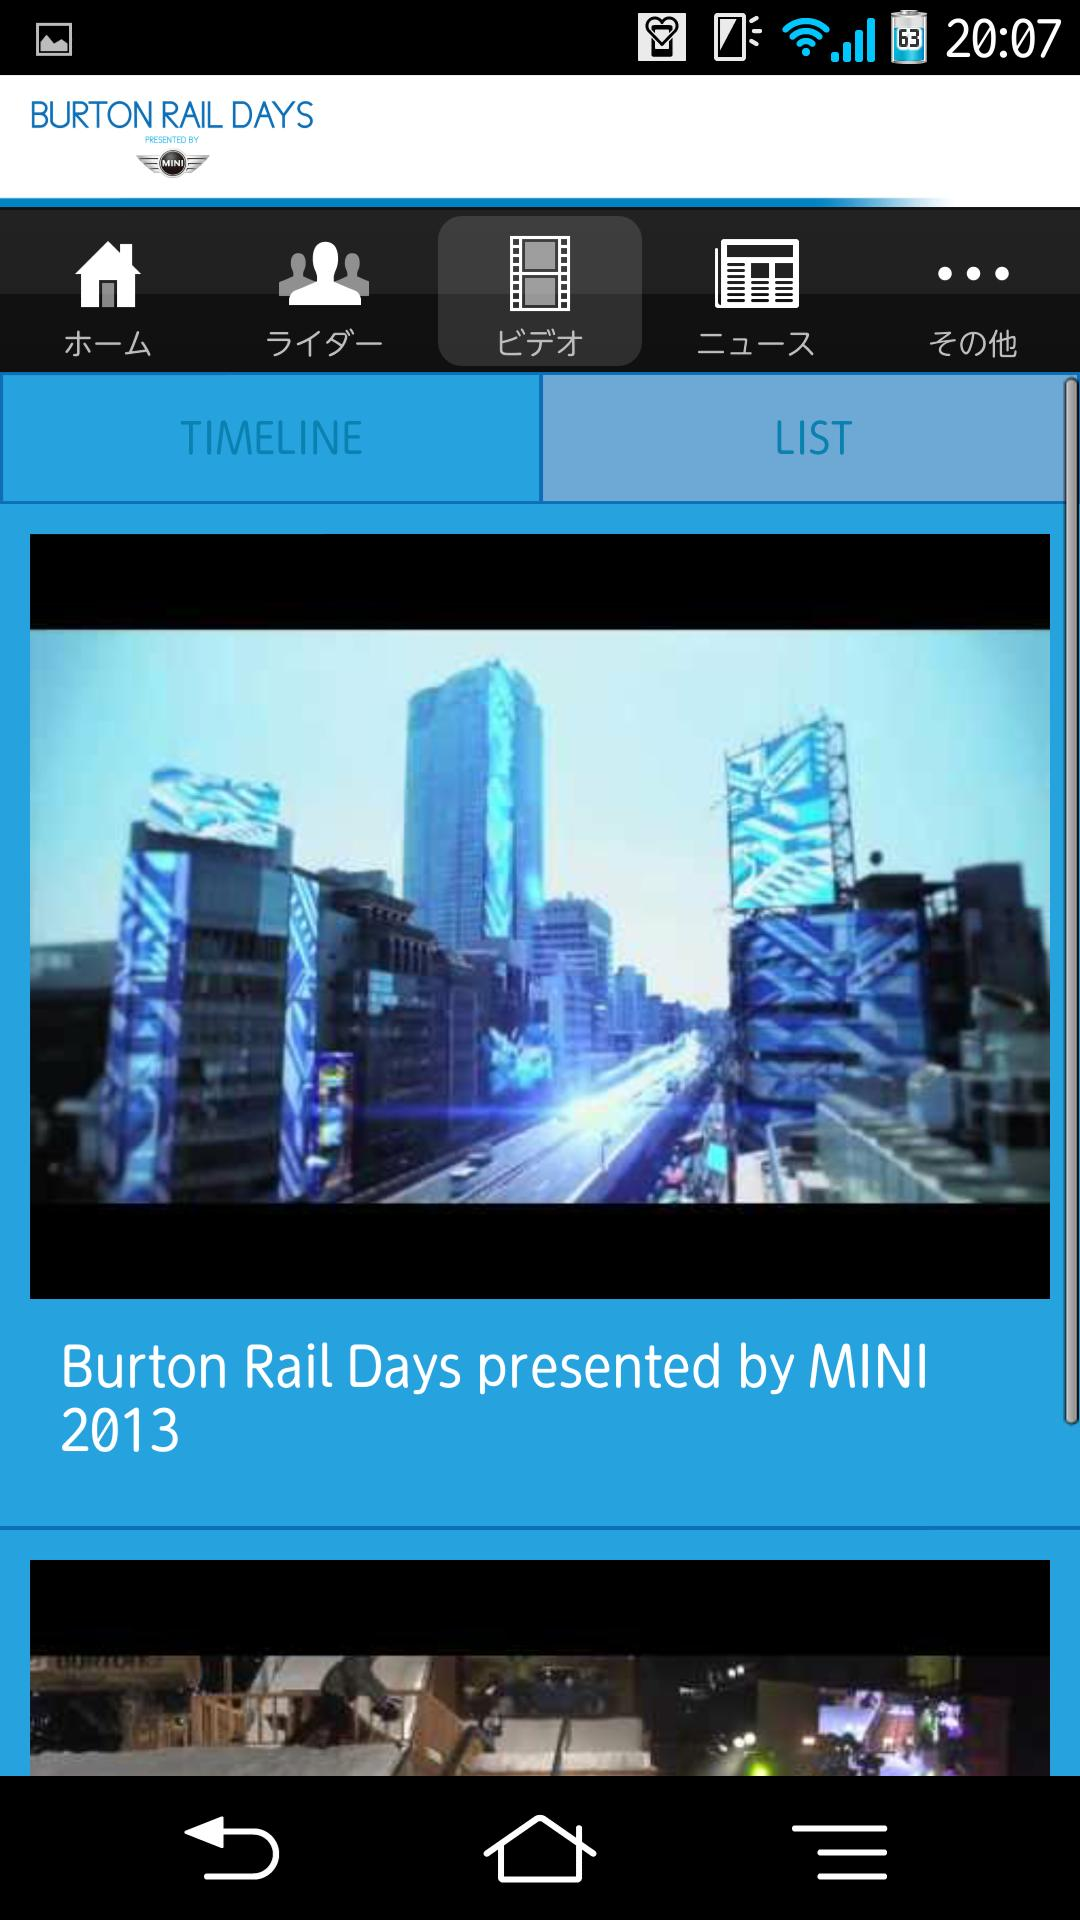 BURTON RAIL DAYS presented by MINI